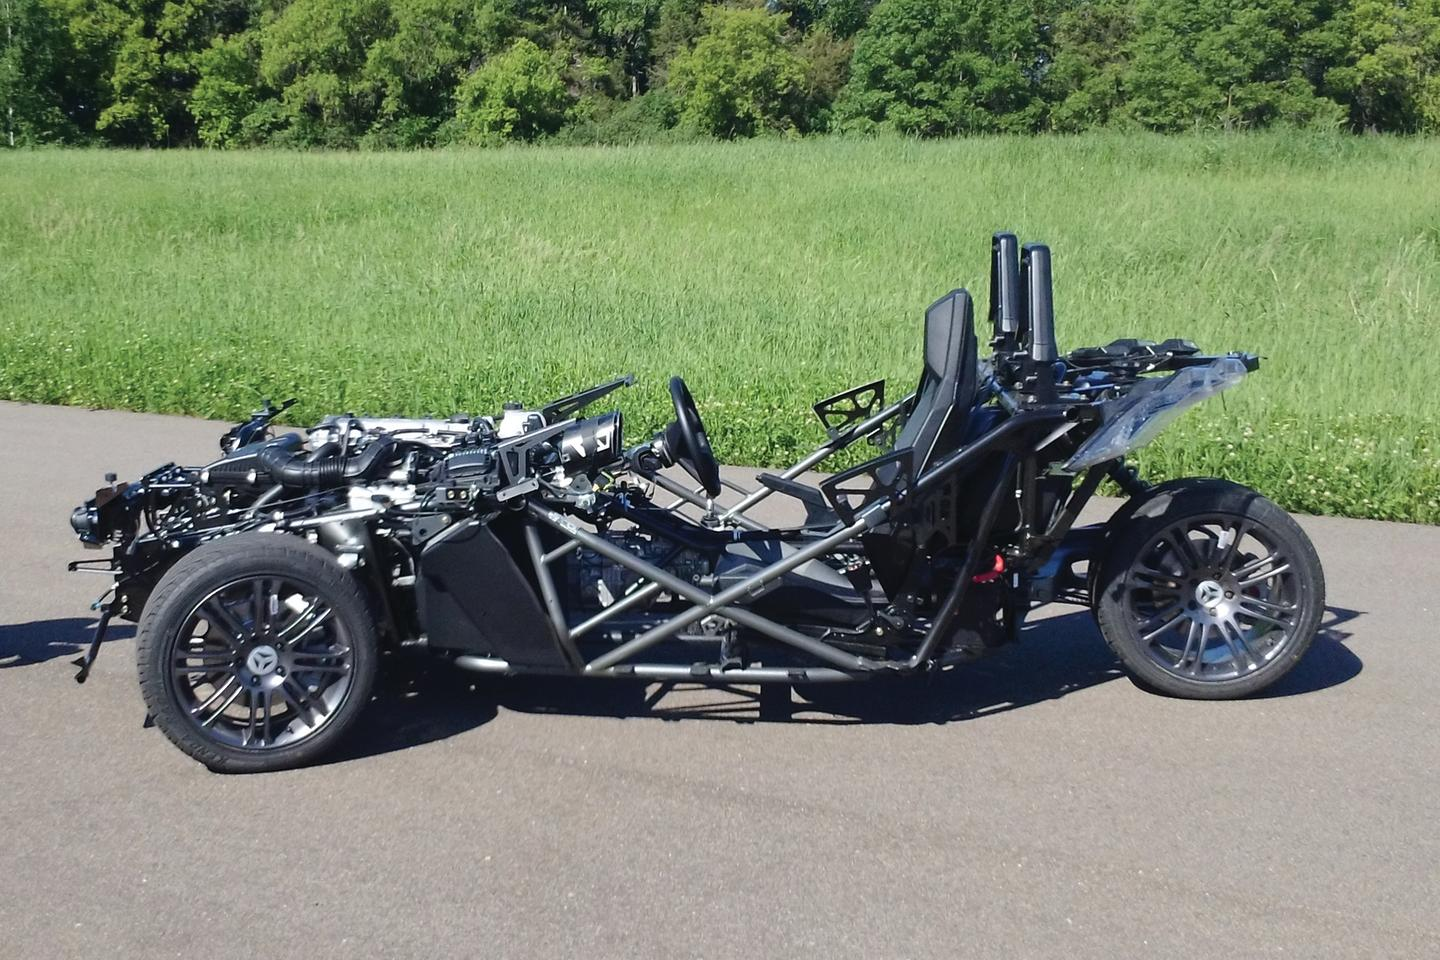 The guts of the Slingshot